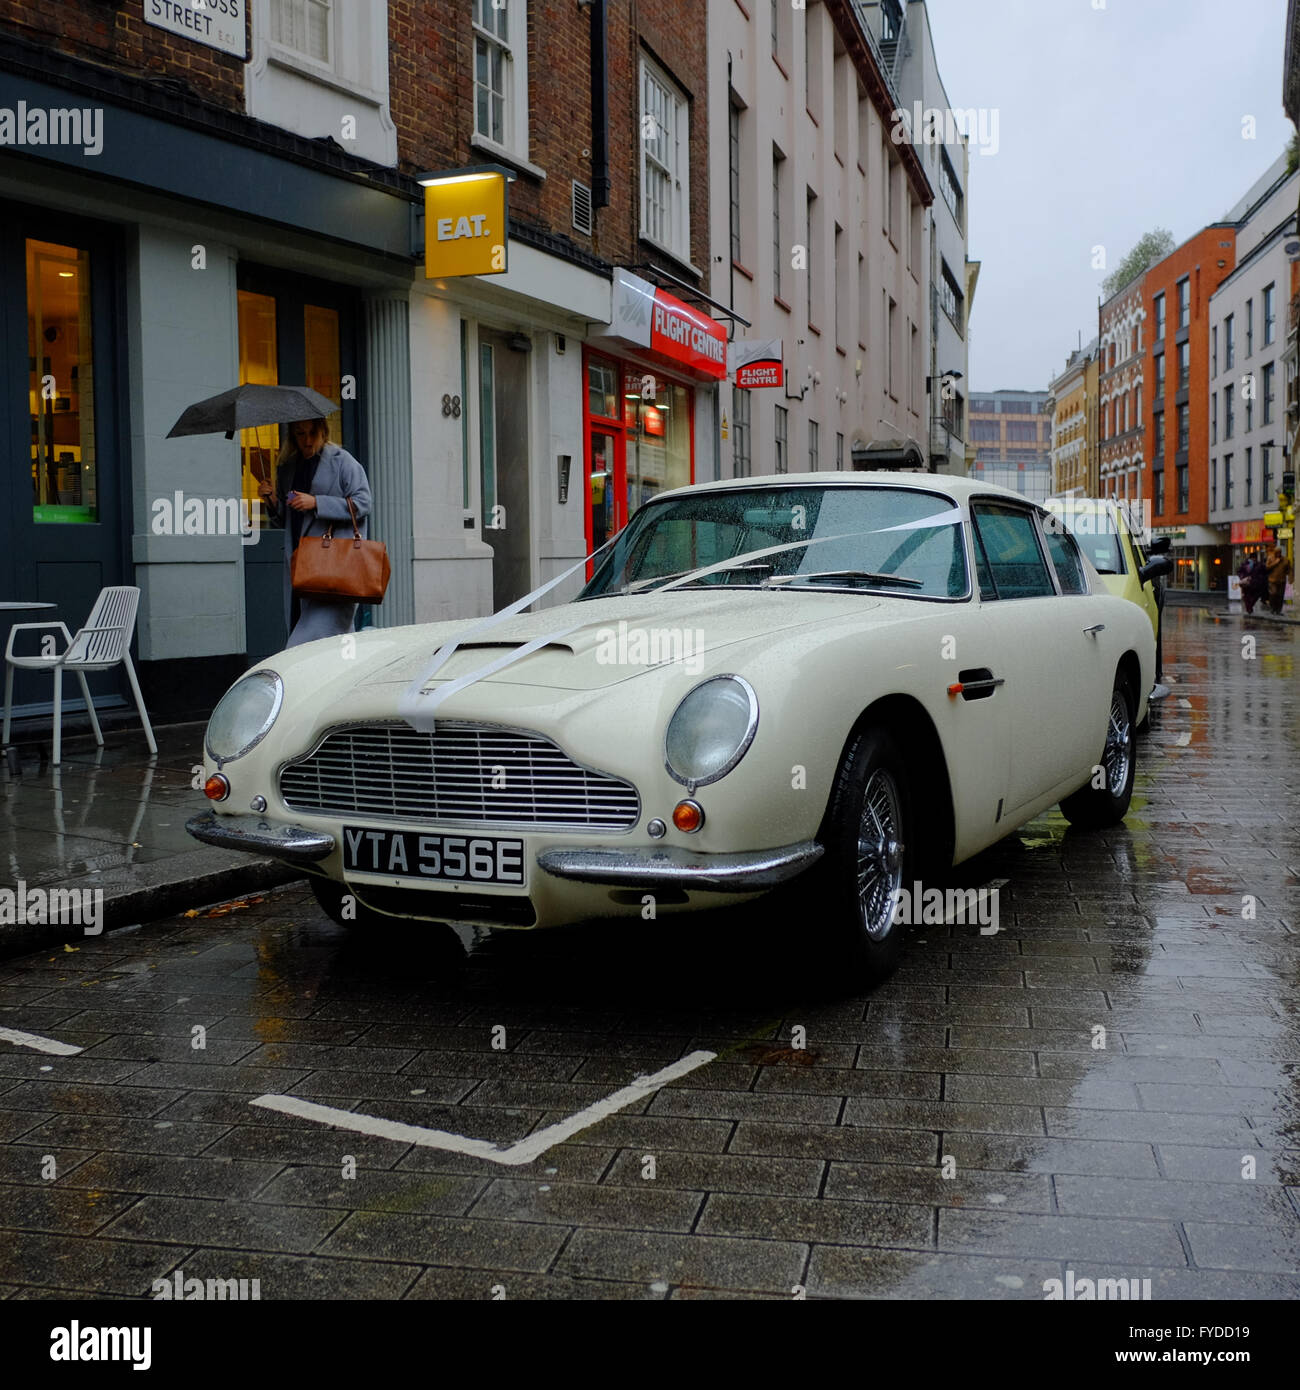 white aston martin db5 classic sports car decorated with wedding